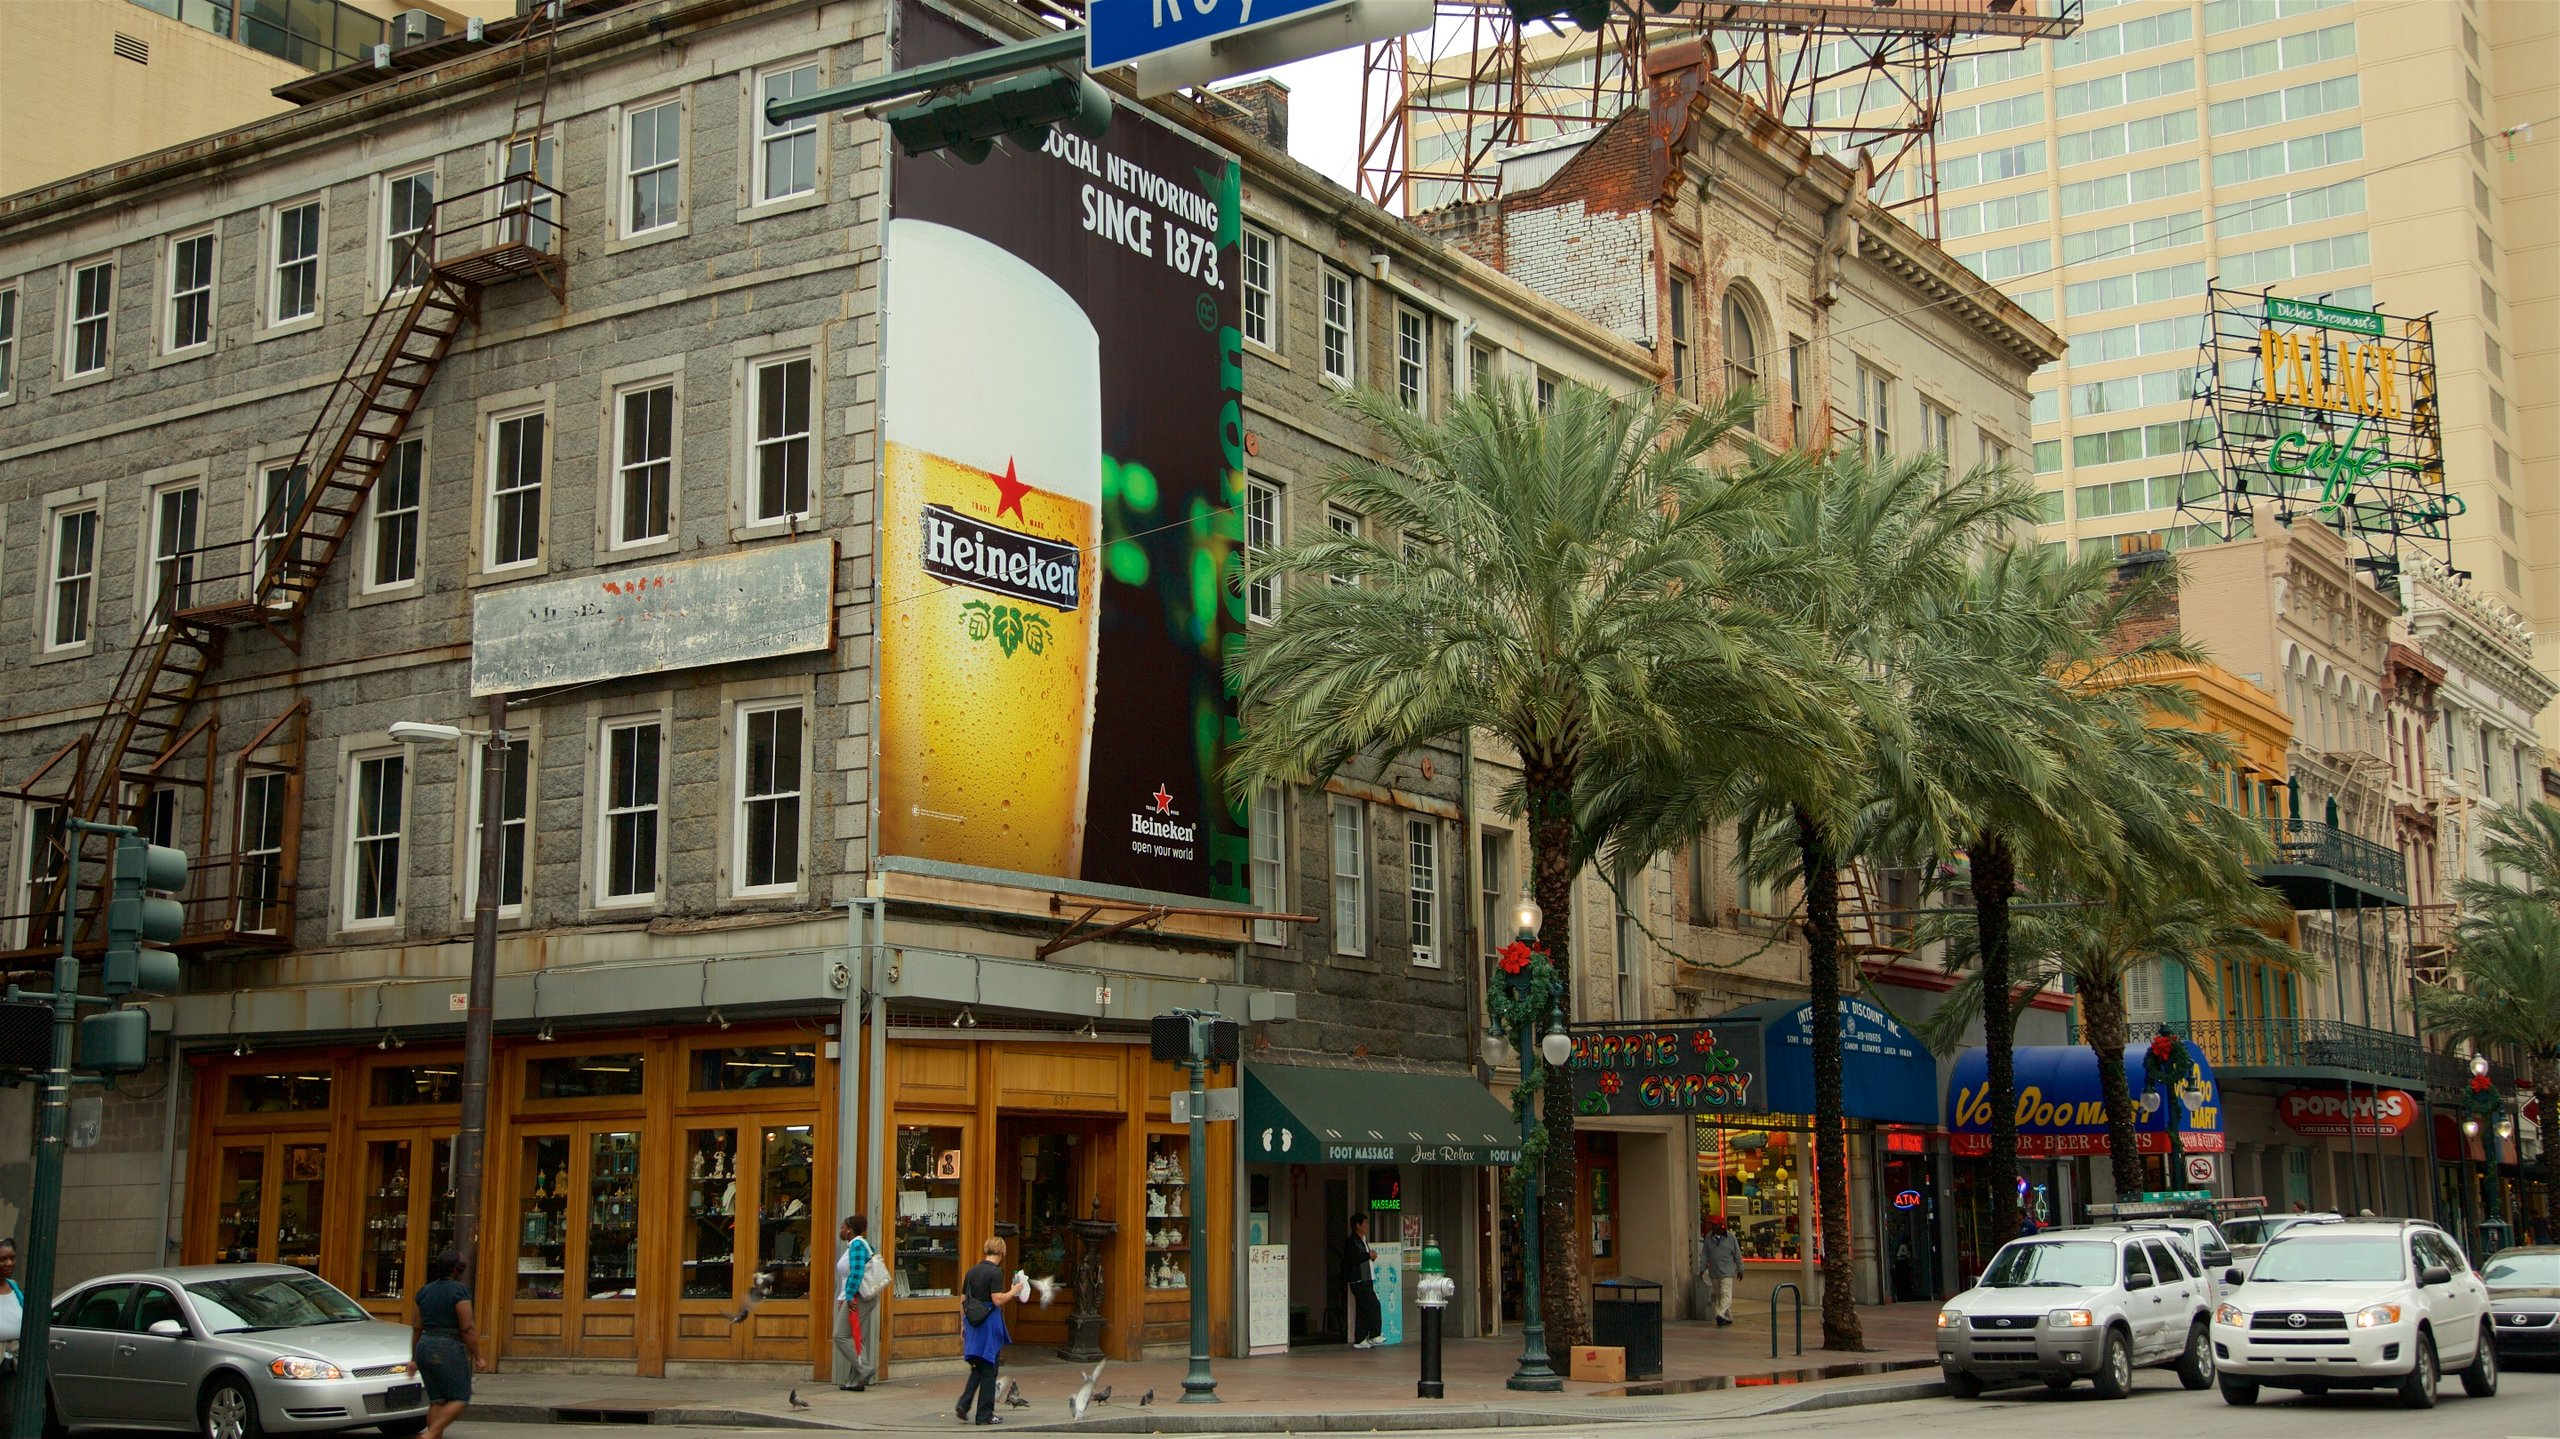 Canal Street, New Orleans, Louisiana, United States of America